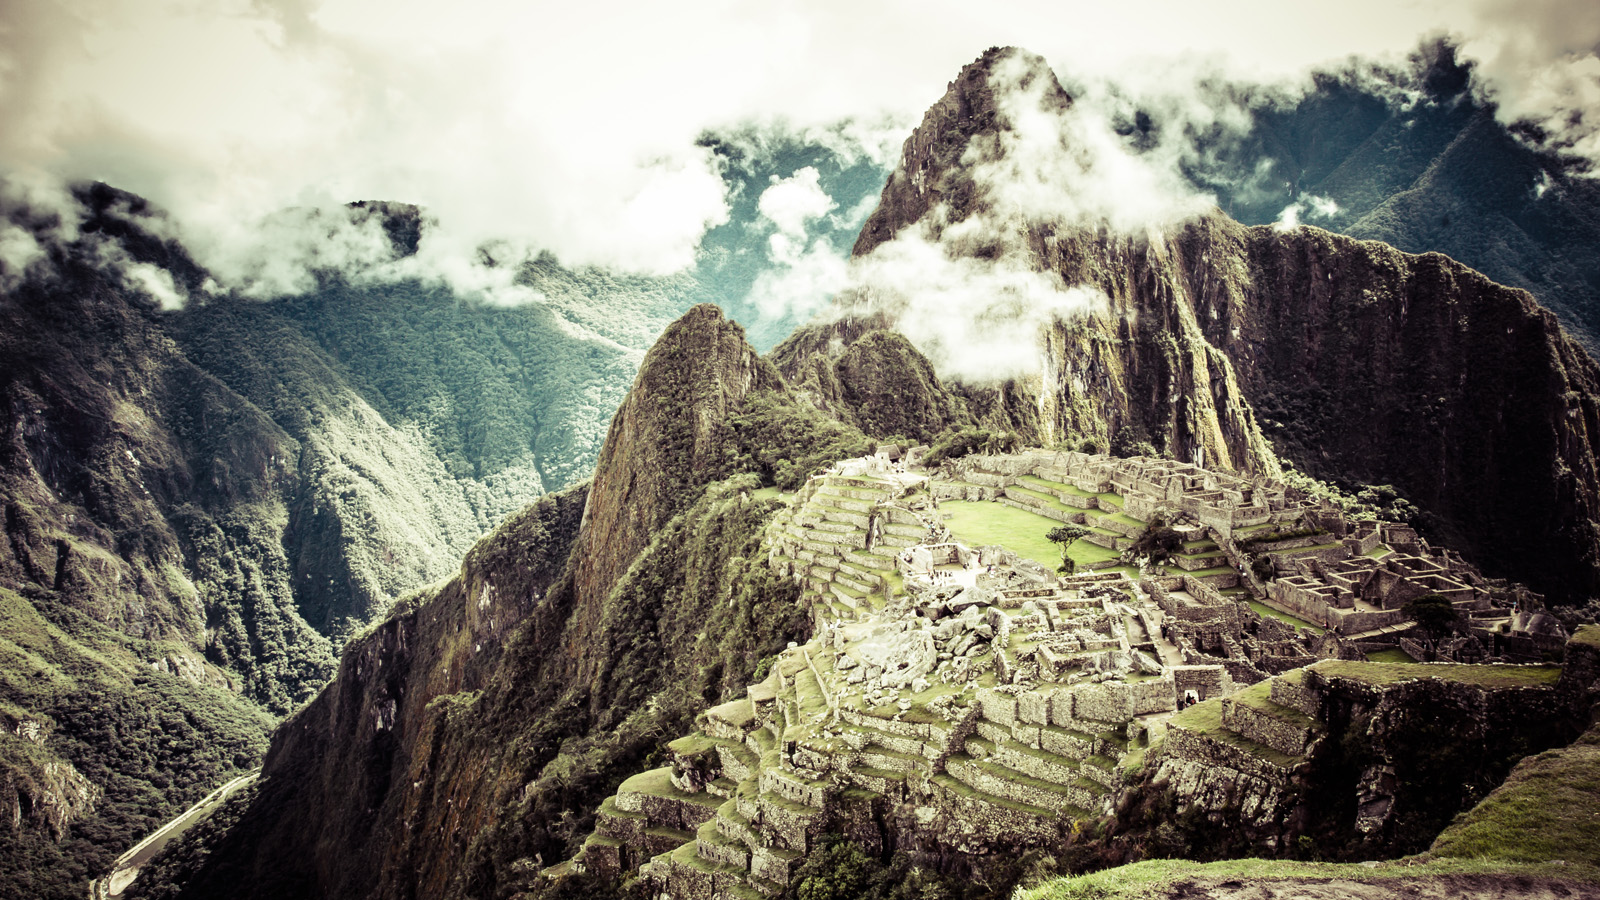 Luxury Travel In Peru: The Inca Trail & The Amazon